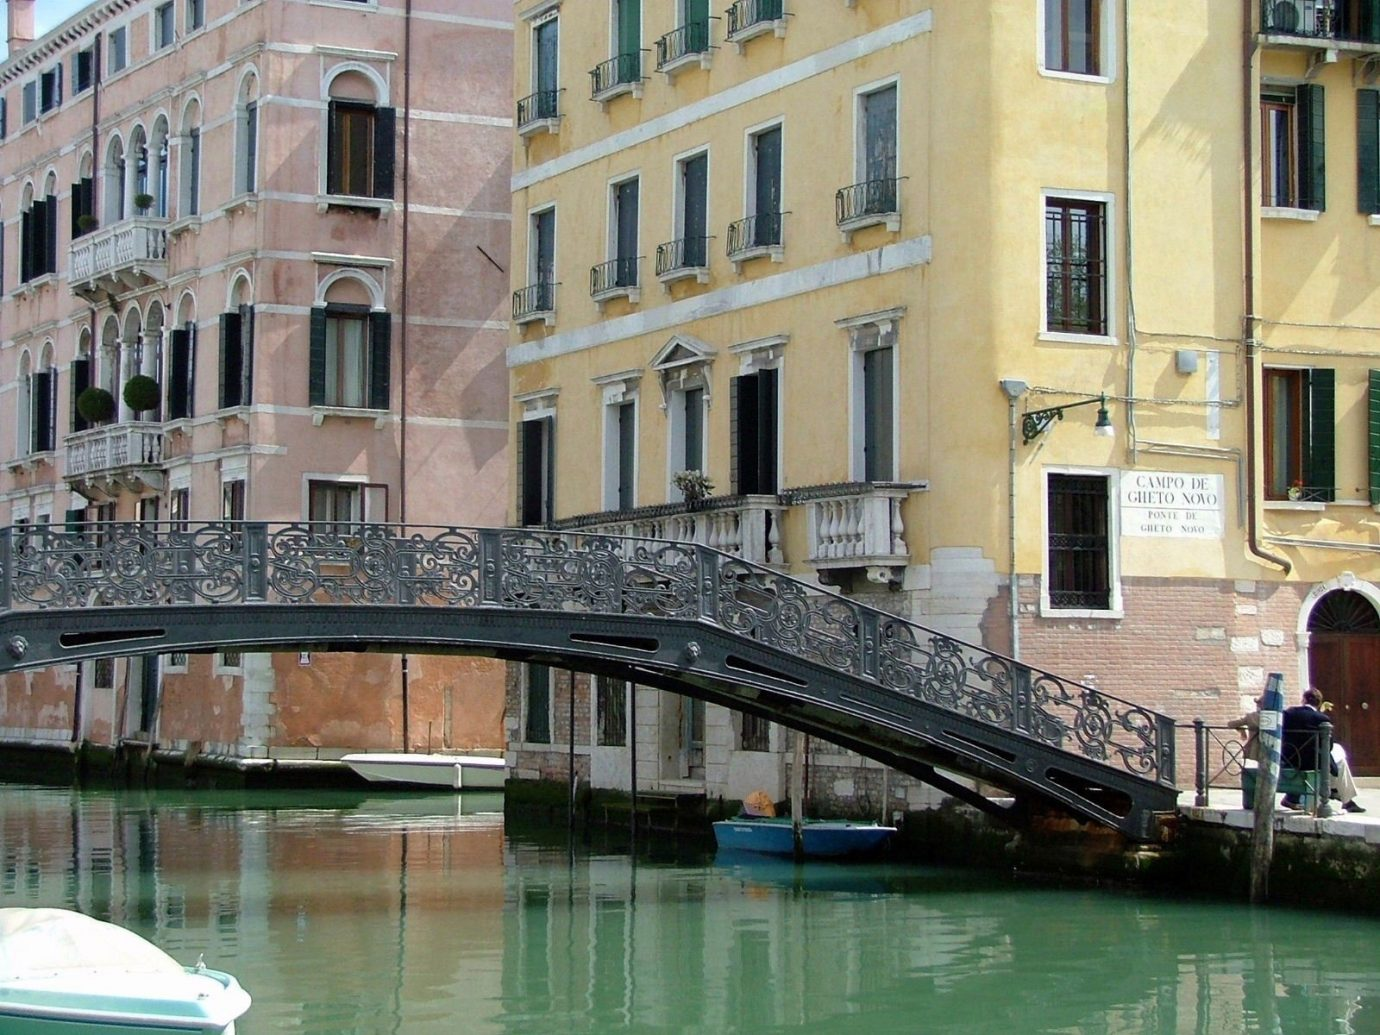 Trip Ideas building water outdoor Boat Canal River waterway Architecture vehicle facade condominium apartment building